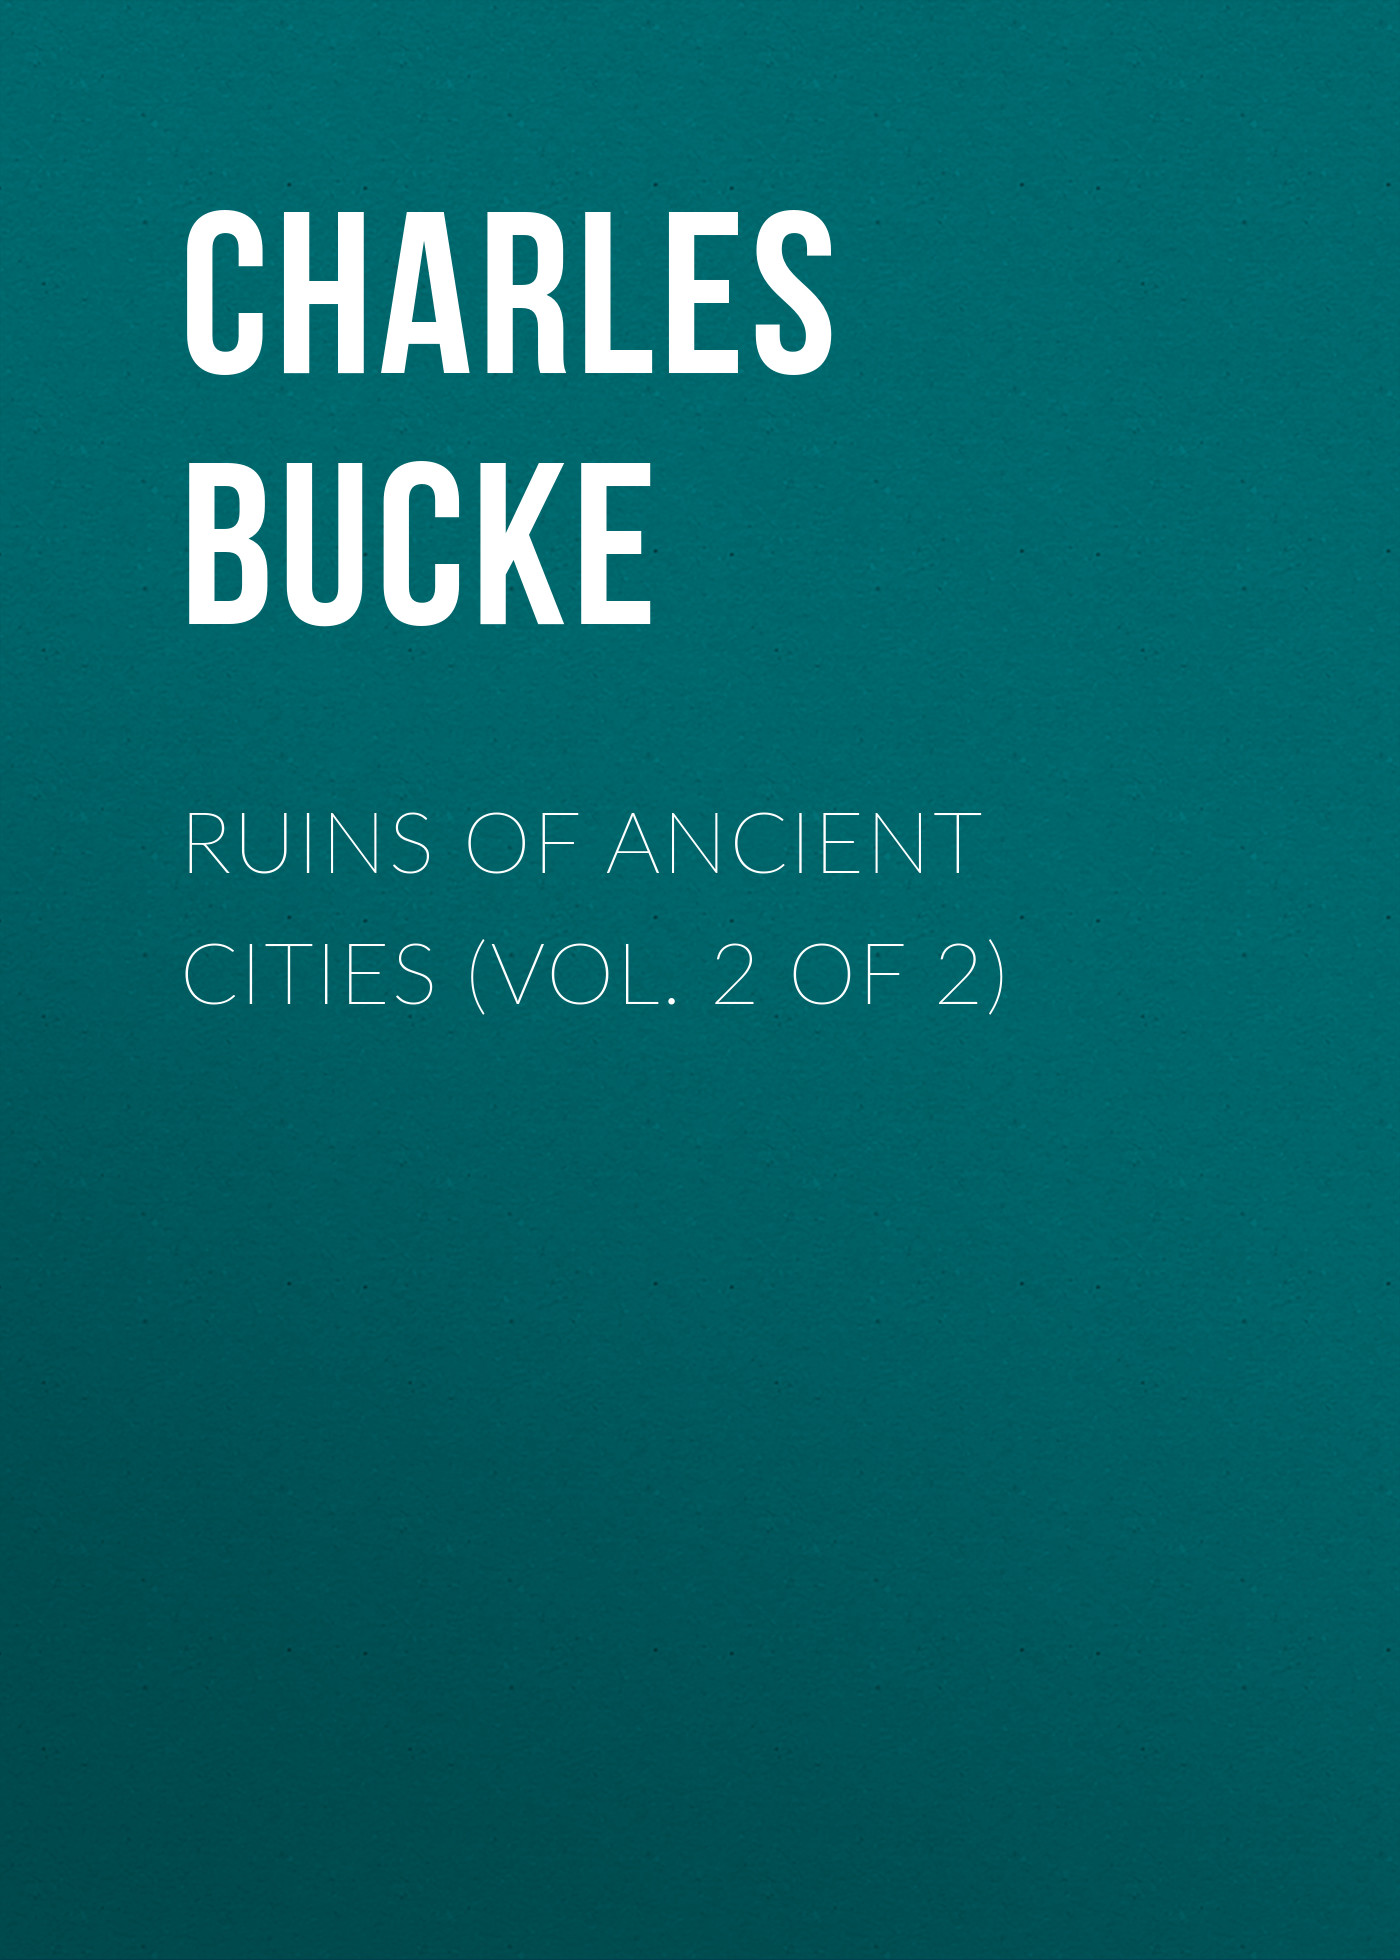 лучшая цена Bucke Charles Ruins of Ancient Cities (Vol. 2 of 2)